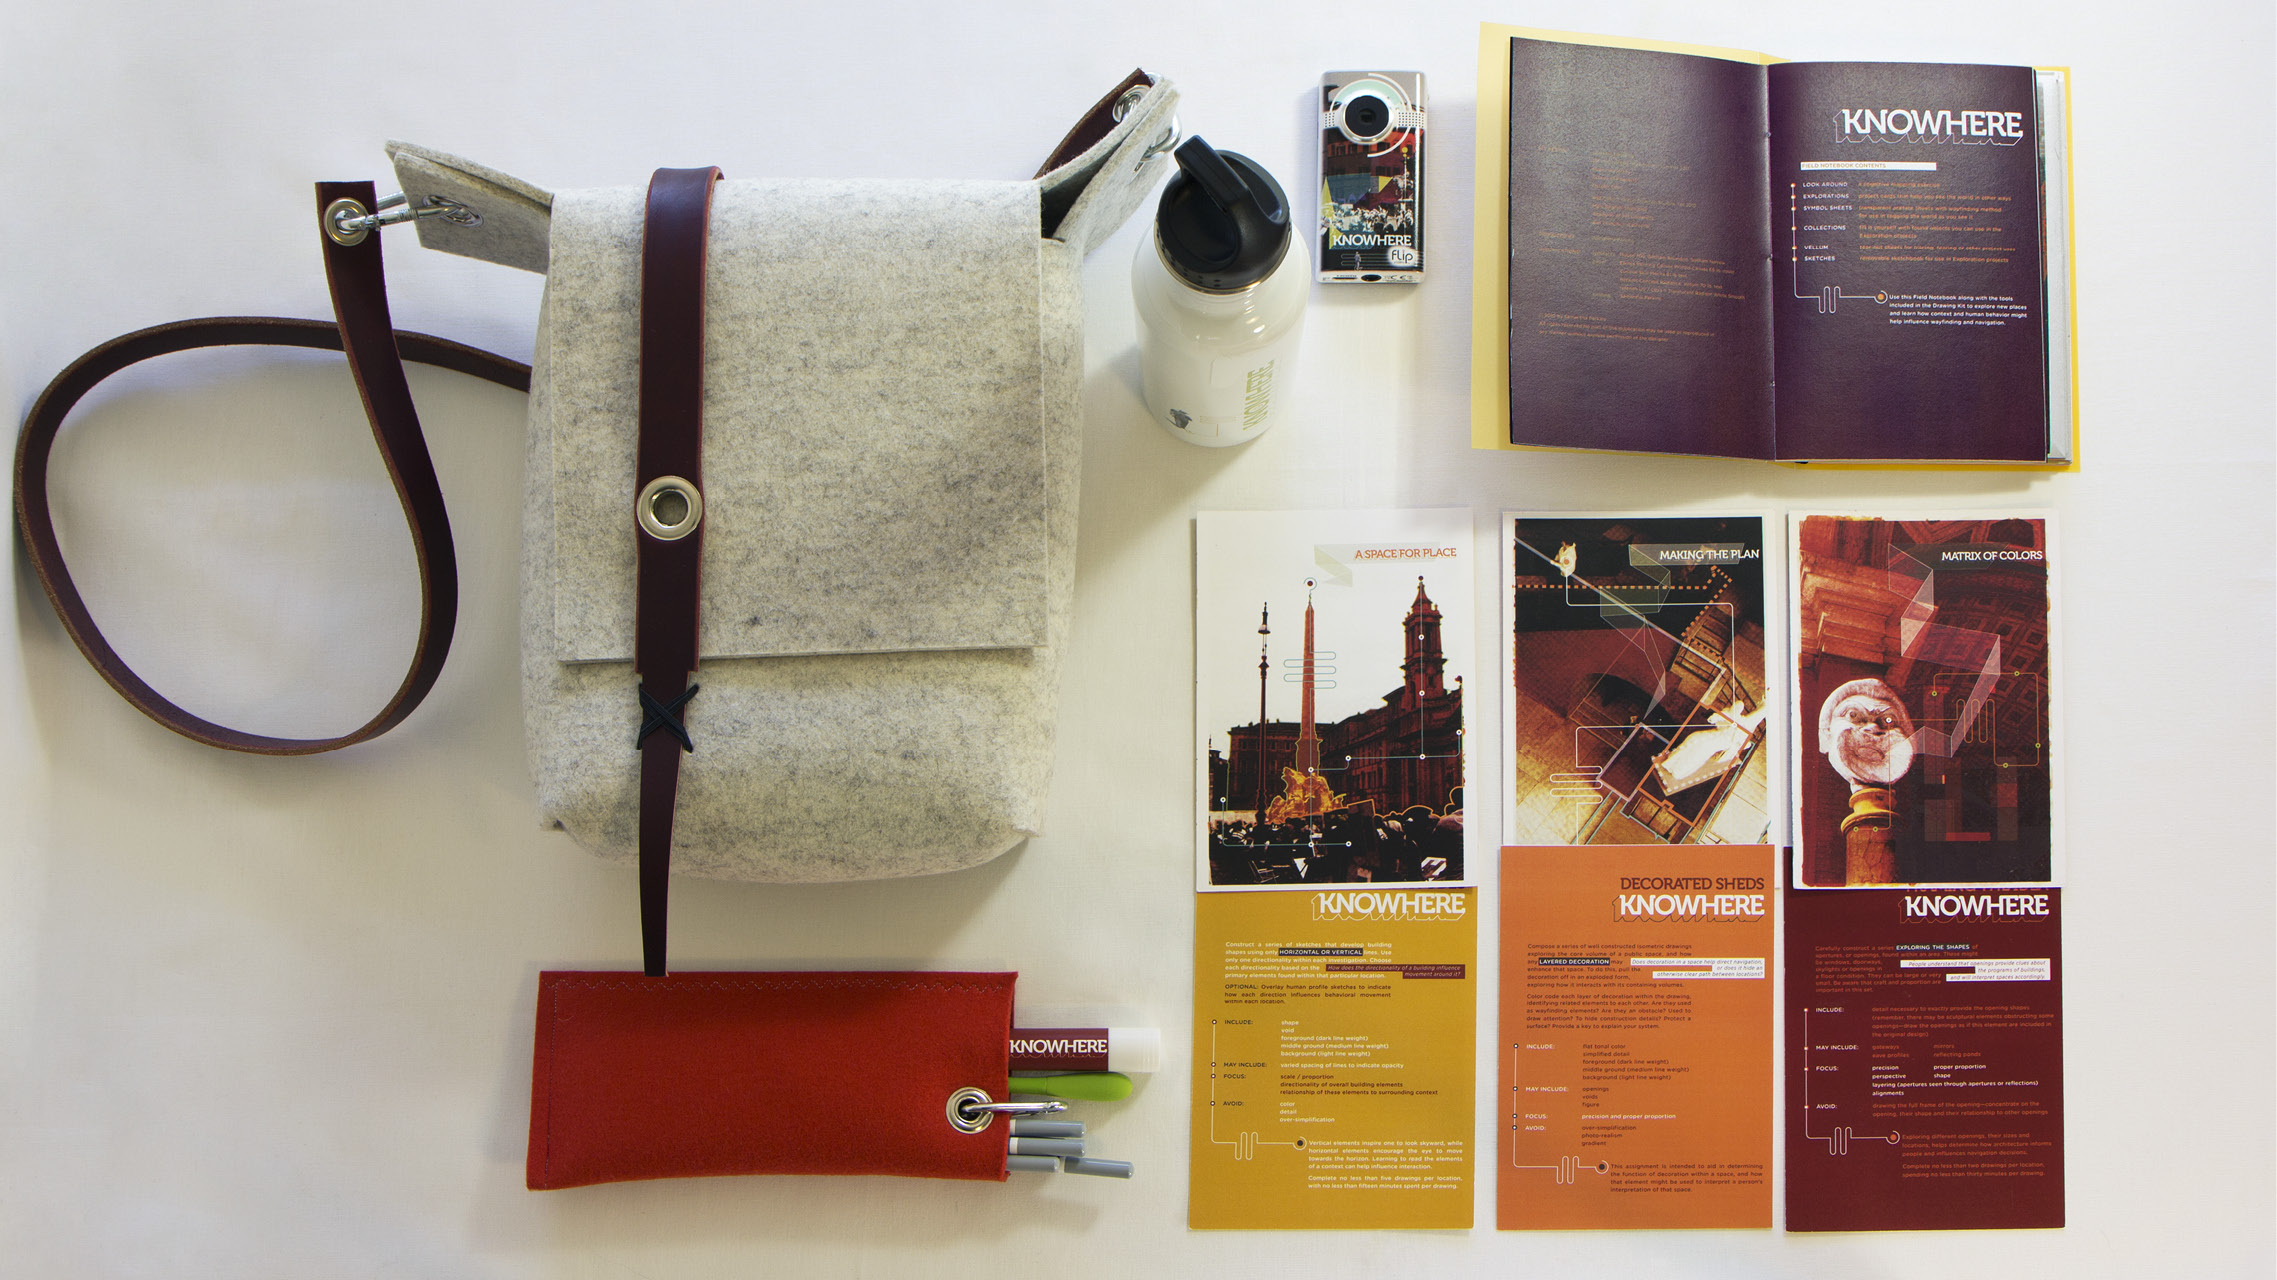 the full roadkit—handmade bag, pencil holder (with custom gluestick and TSA-approved x-acto knife), exploration prompt cards, field book, camera, and water bottle